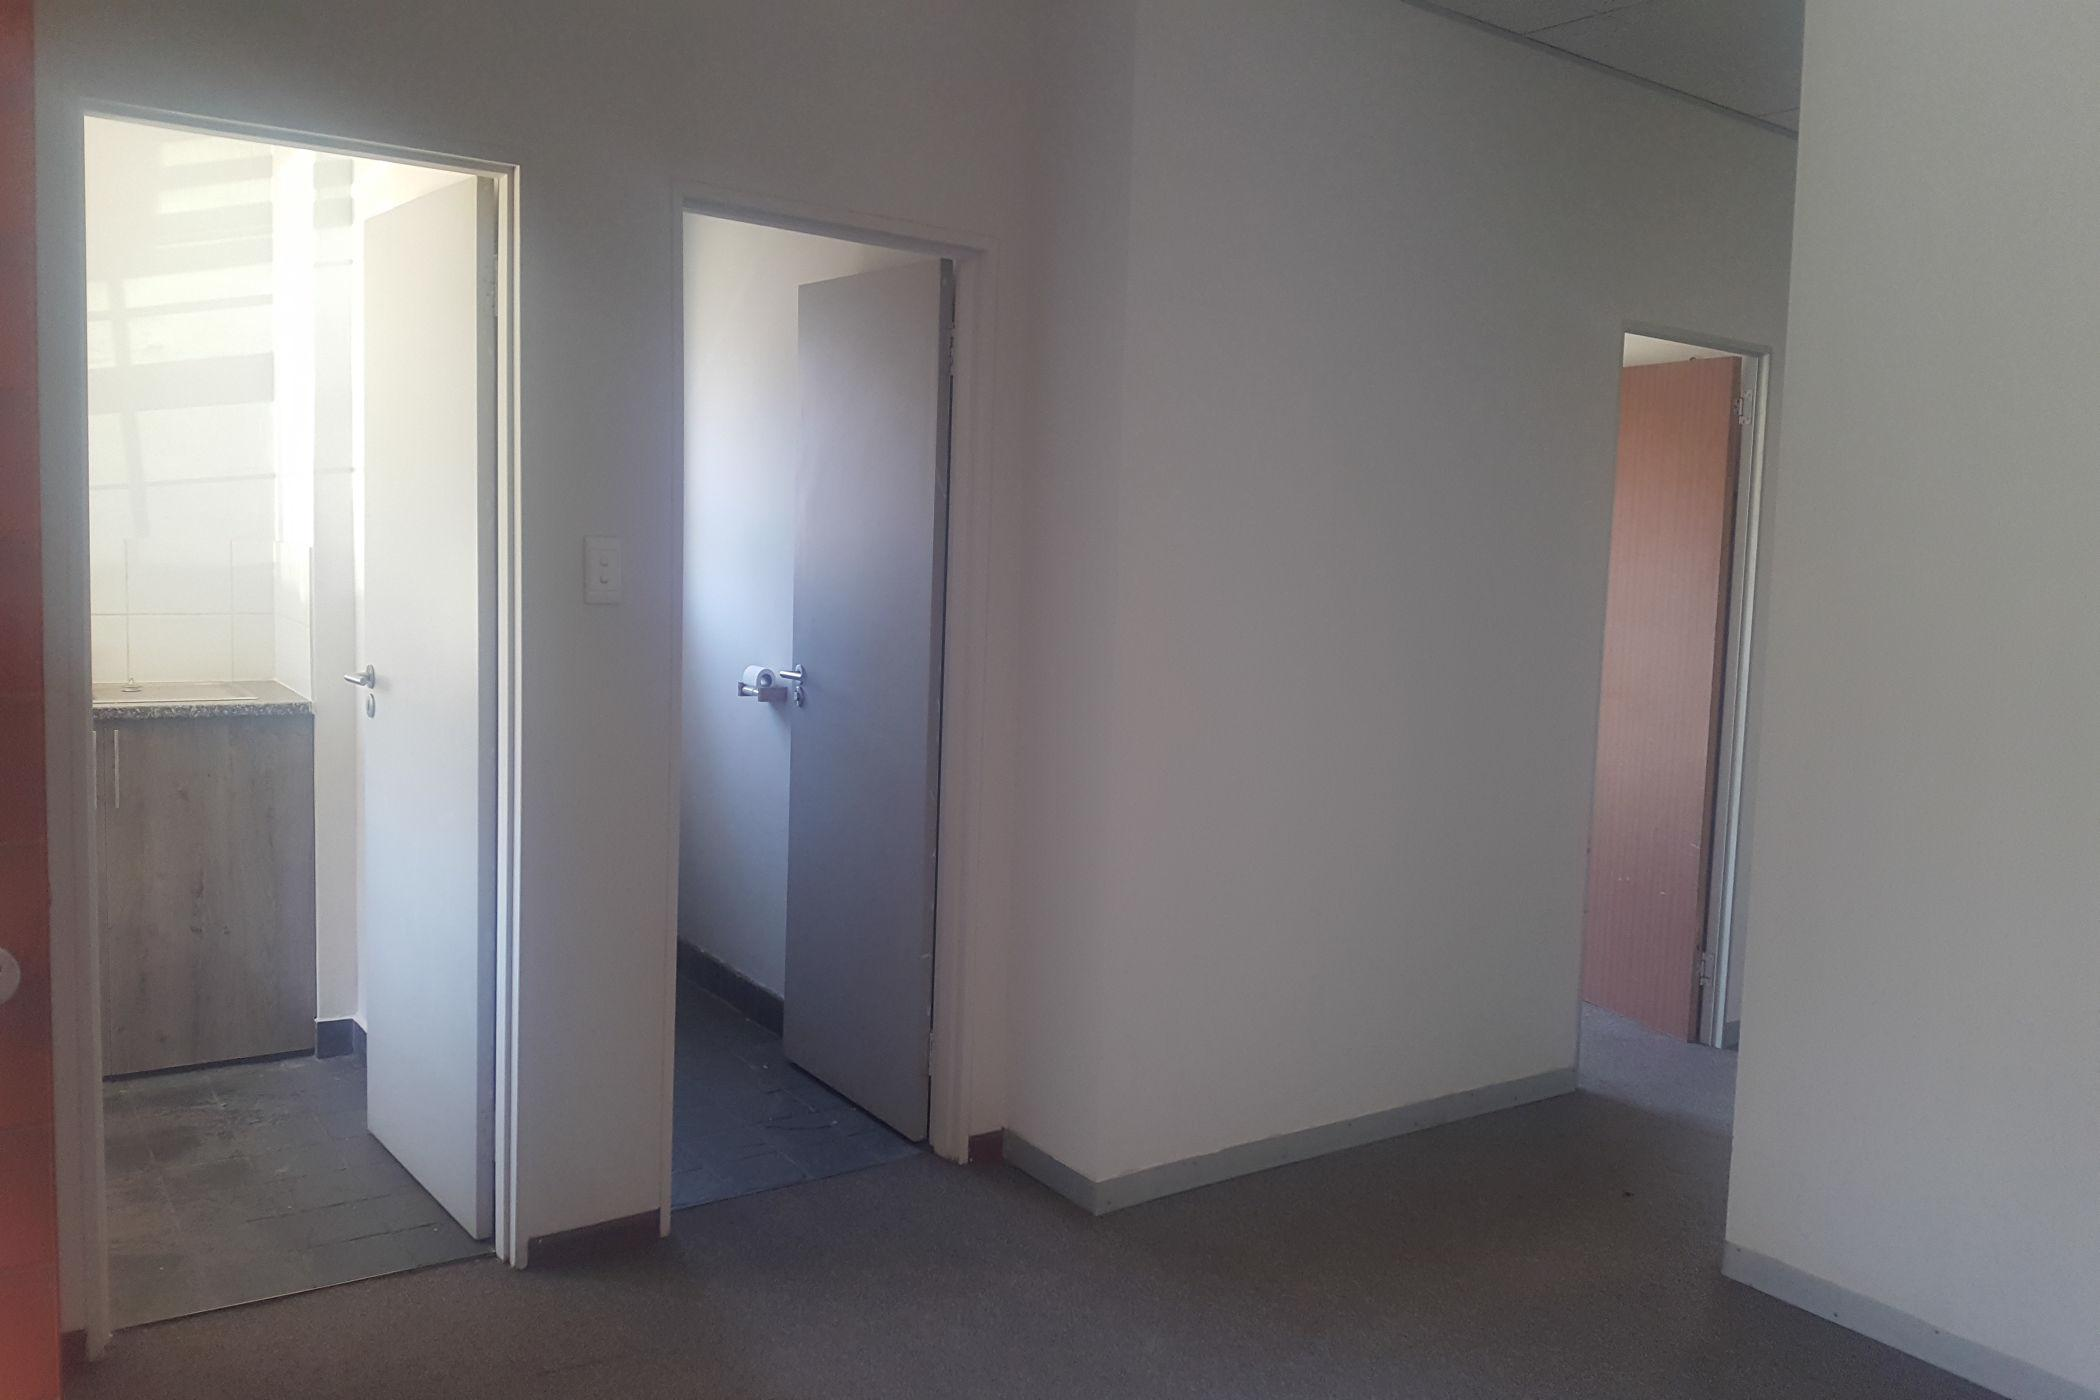 https://listing.pamgolding.co.za/images/properties/201909/1511169/H/1511169_H_1.jpg